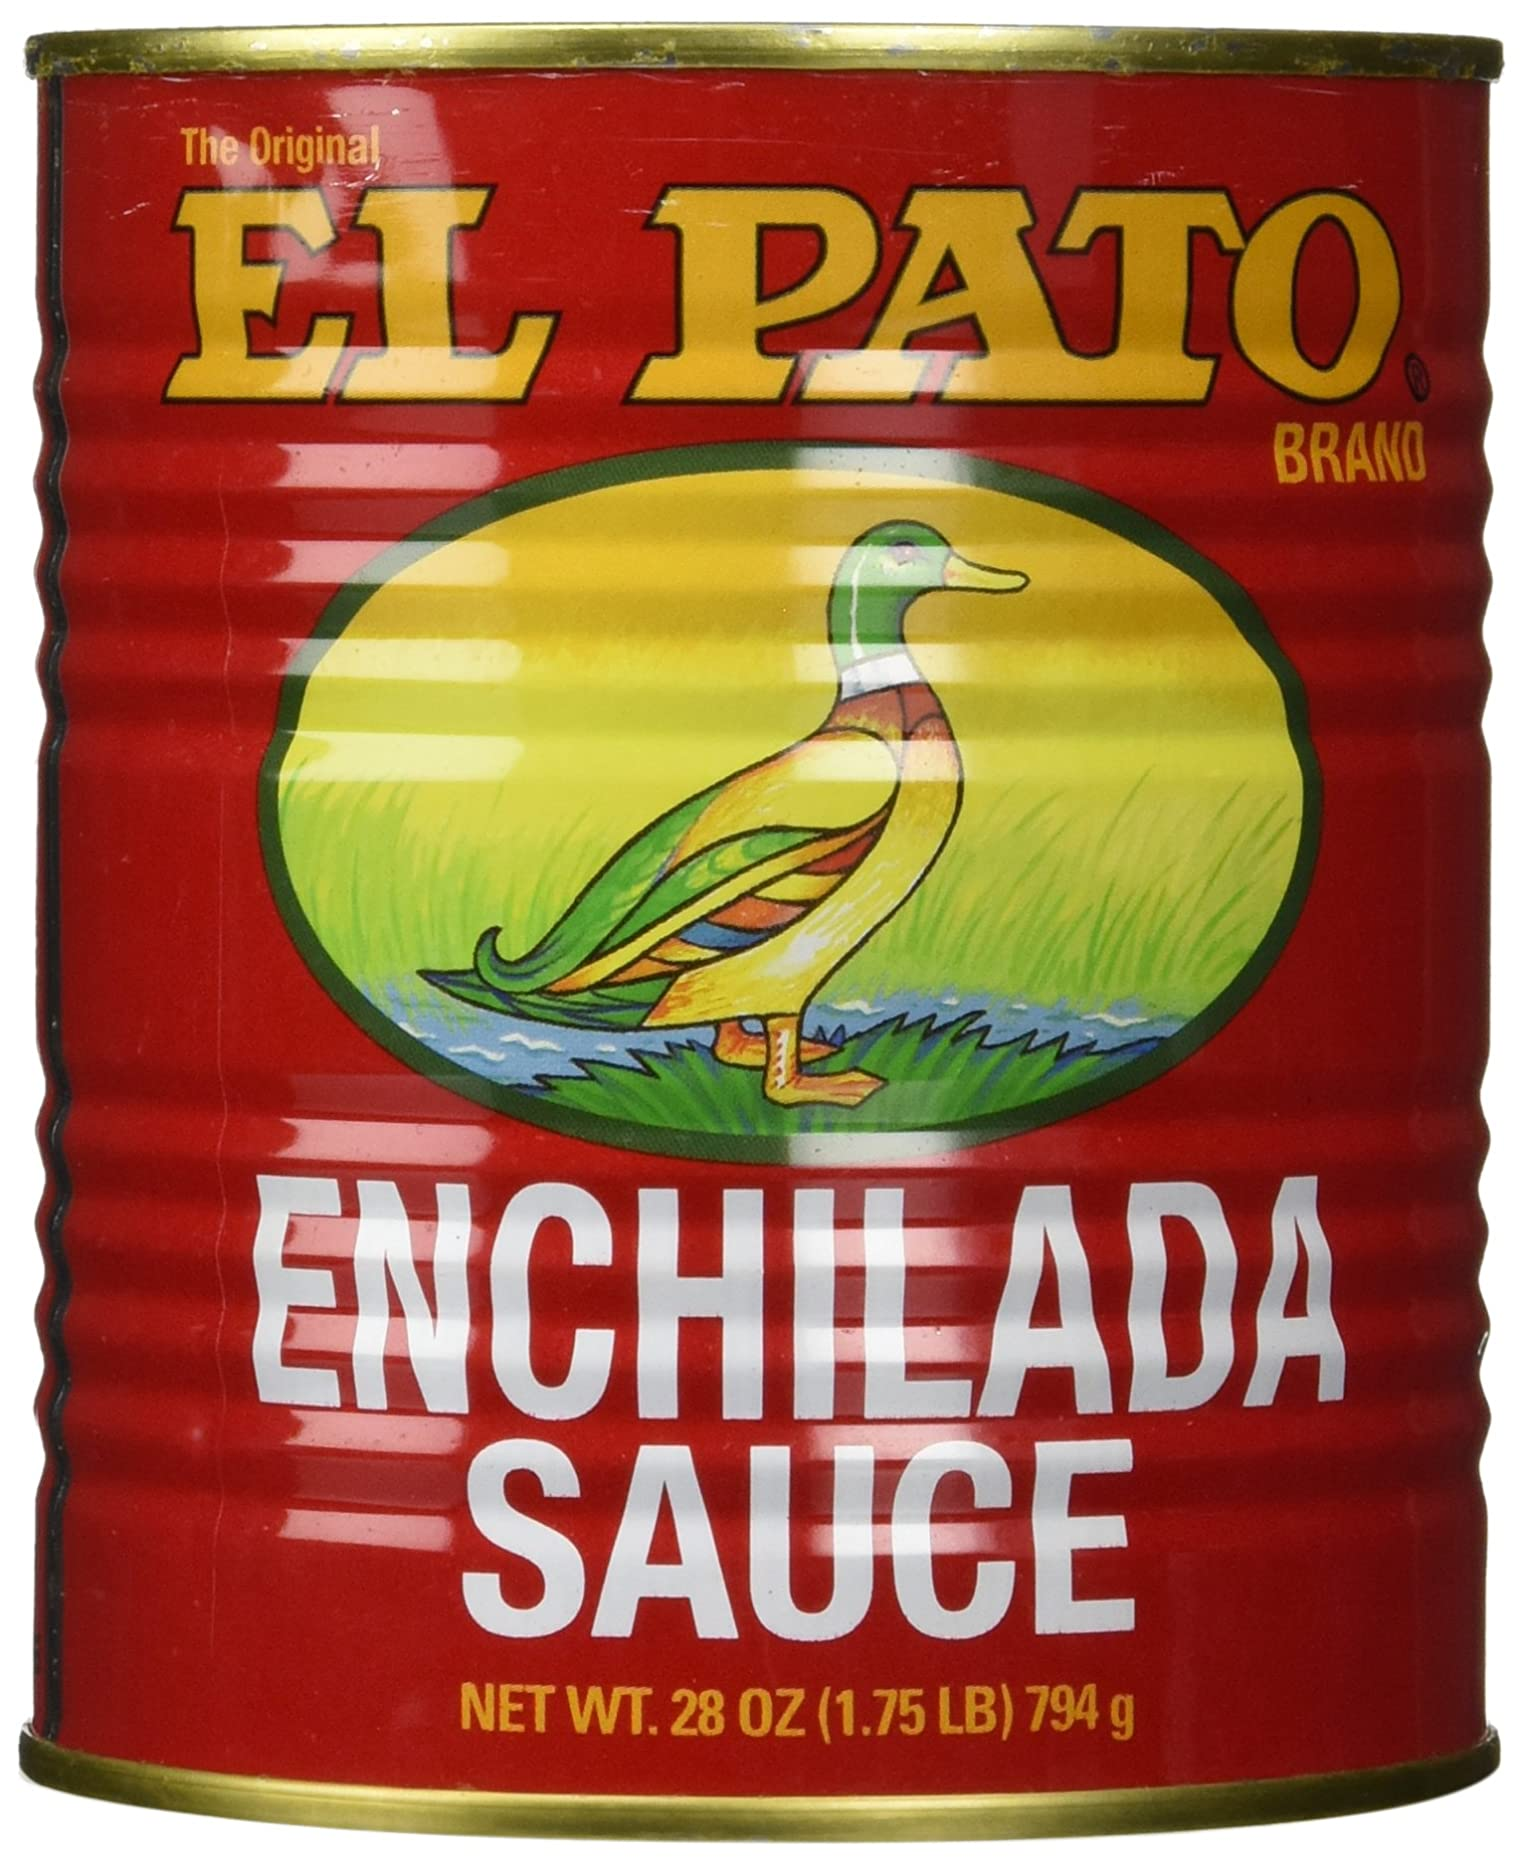 El Pato Red Chile Enchilada Sauce Review